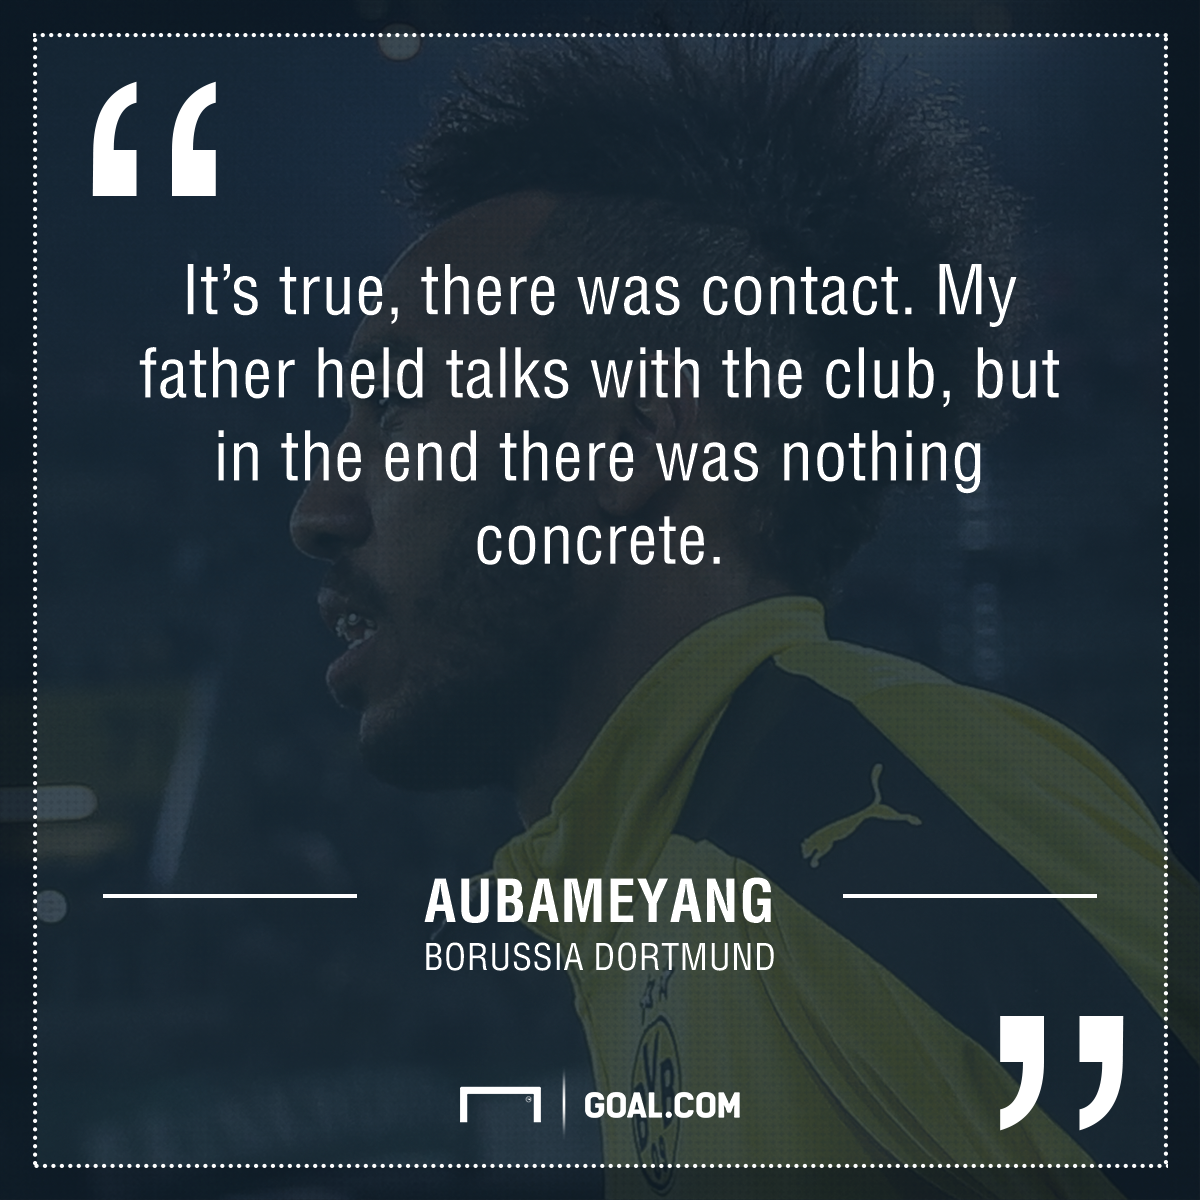 Aubameyang quote